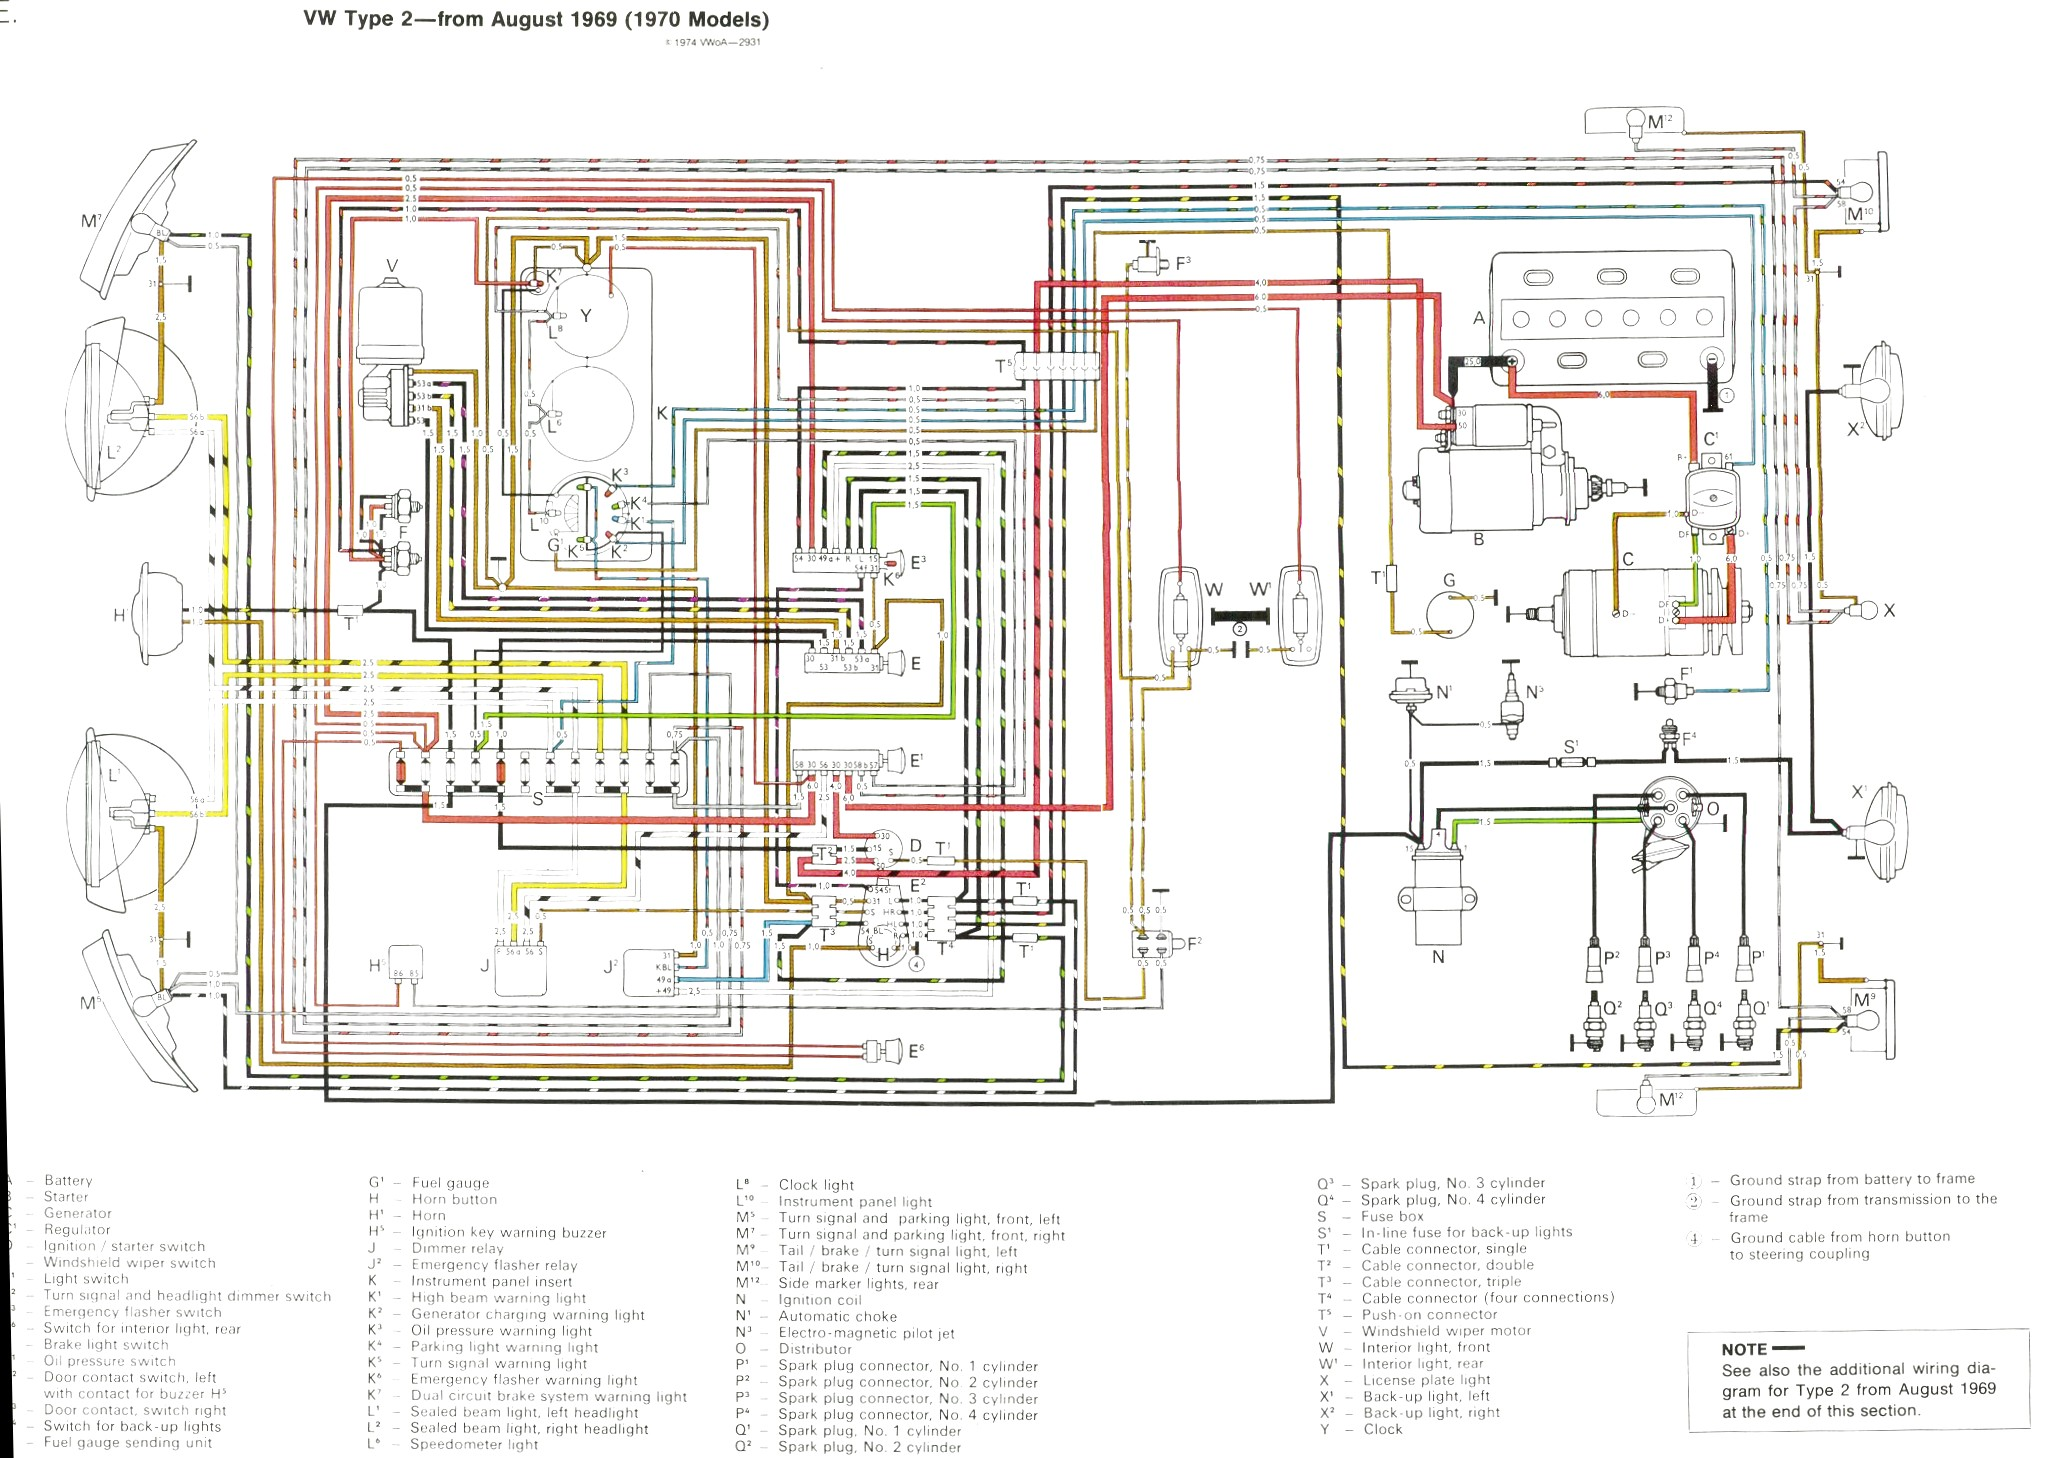 a54 pontiac gto ignition switch wiring diagram | wiring library  wiring library